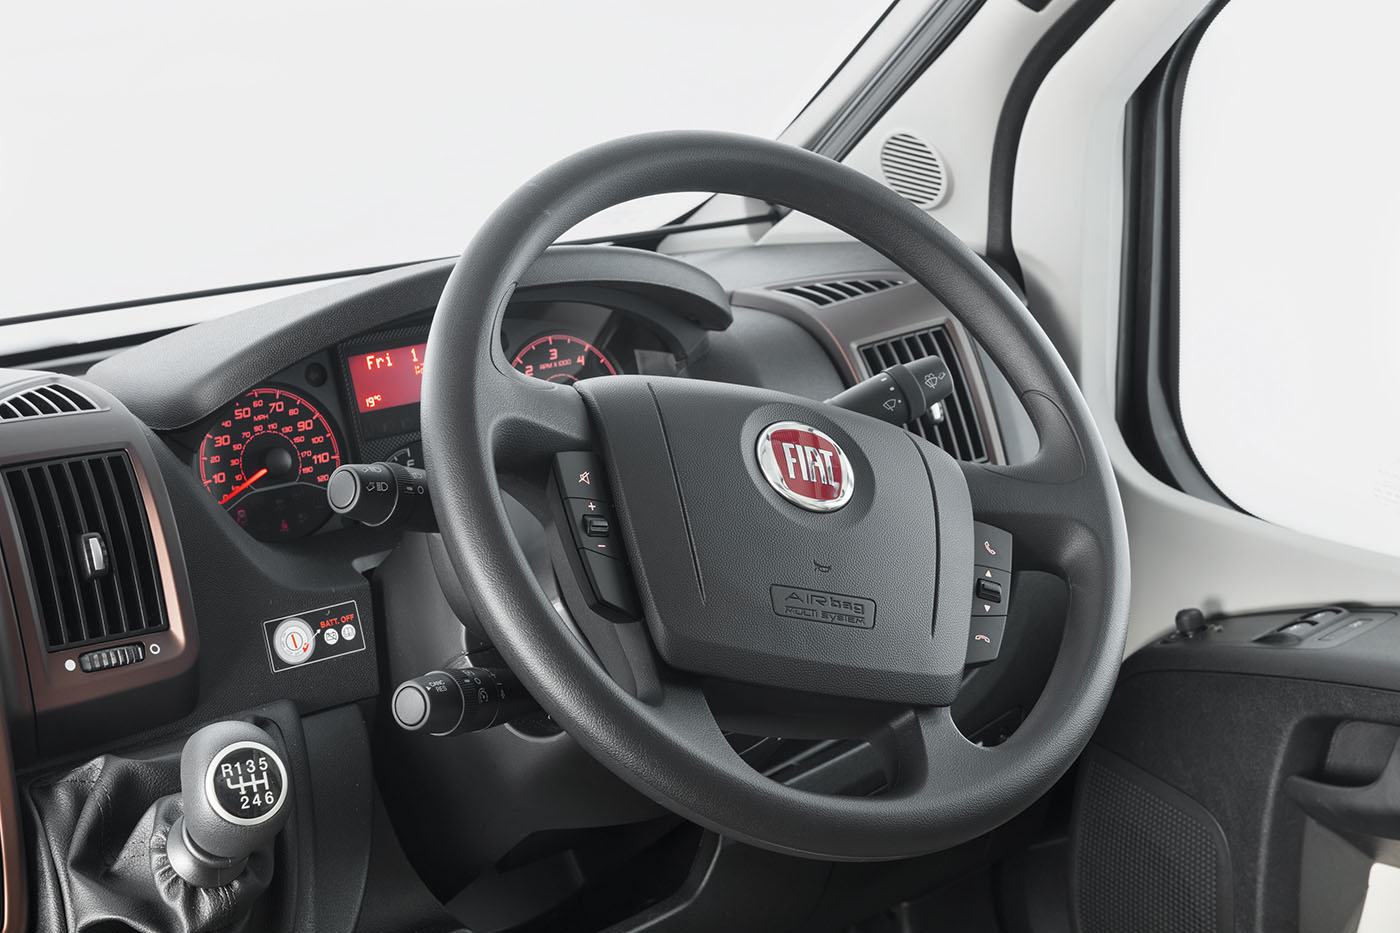 [INT]-Bessacarr-560-Steering-Wheel-Controls-[SWIFT]